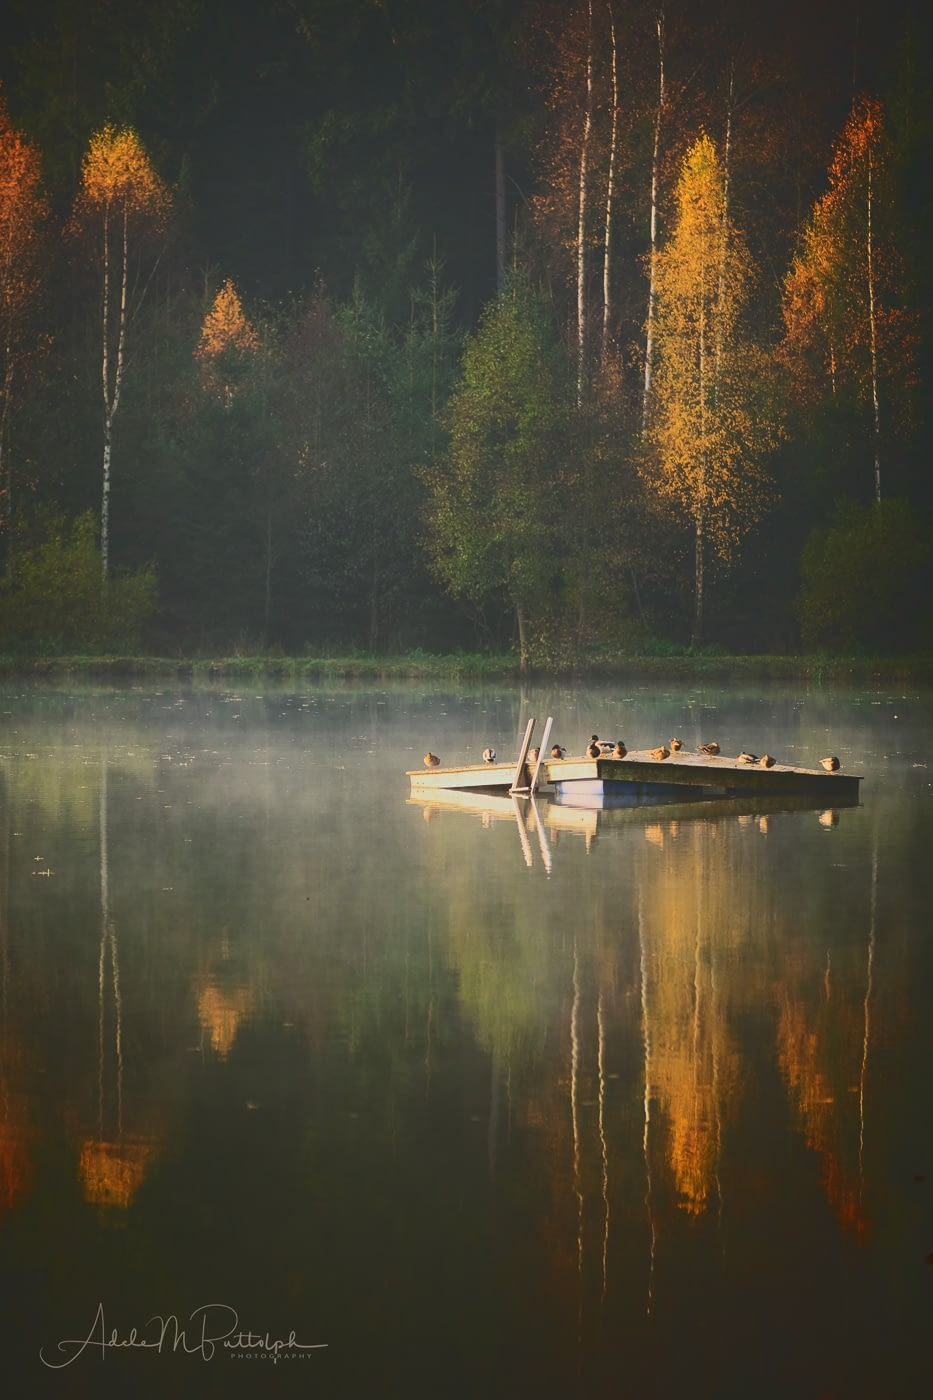 Autumn Morning on a lake in the Czech Republic. Ducks on a small dock add interest to the scene.